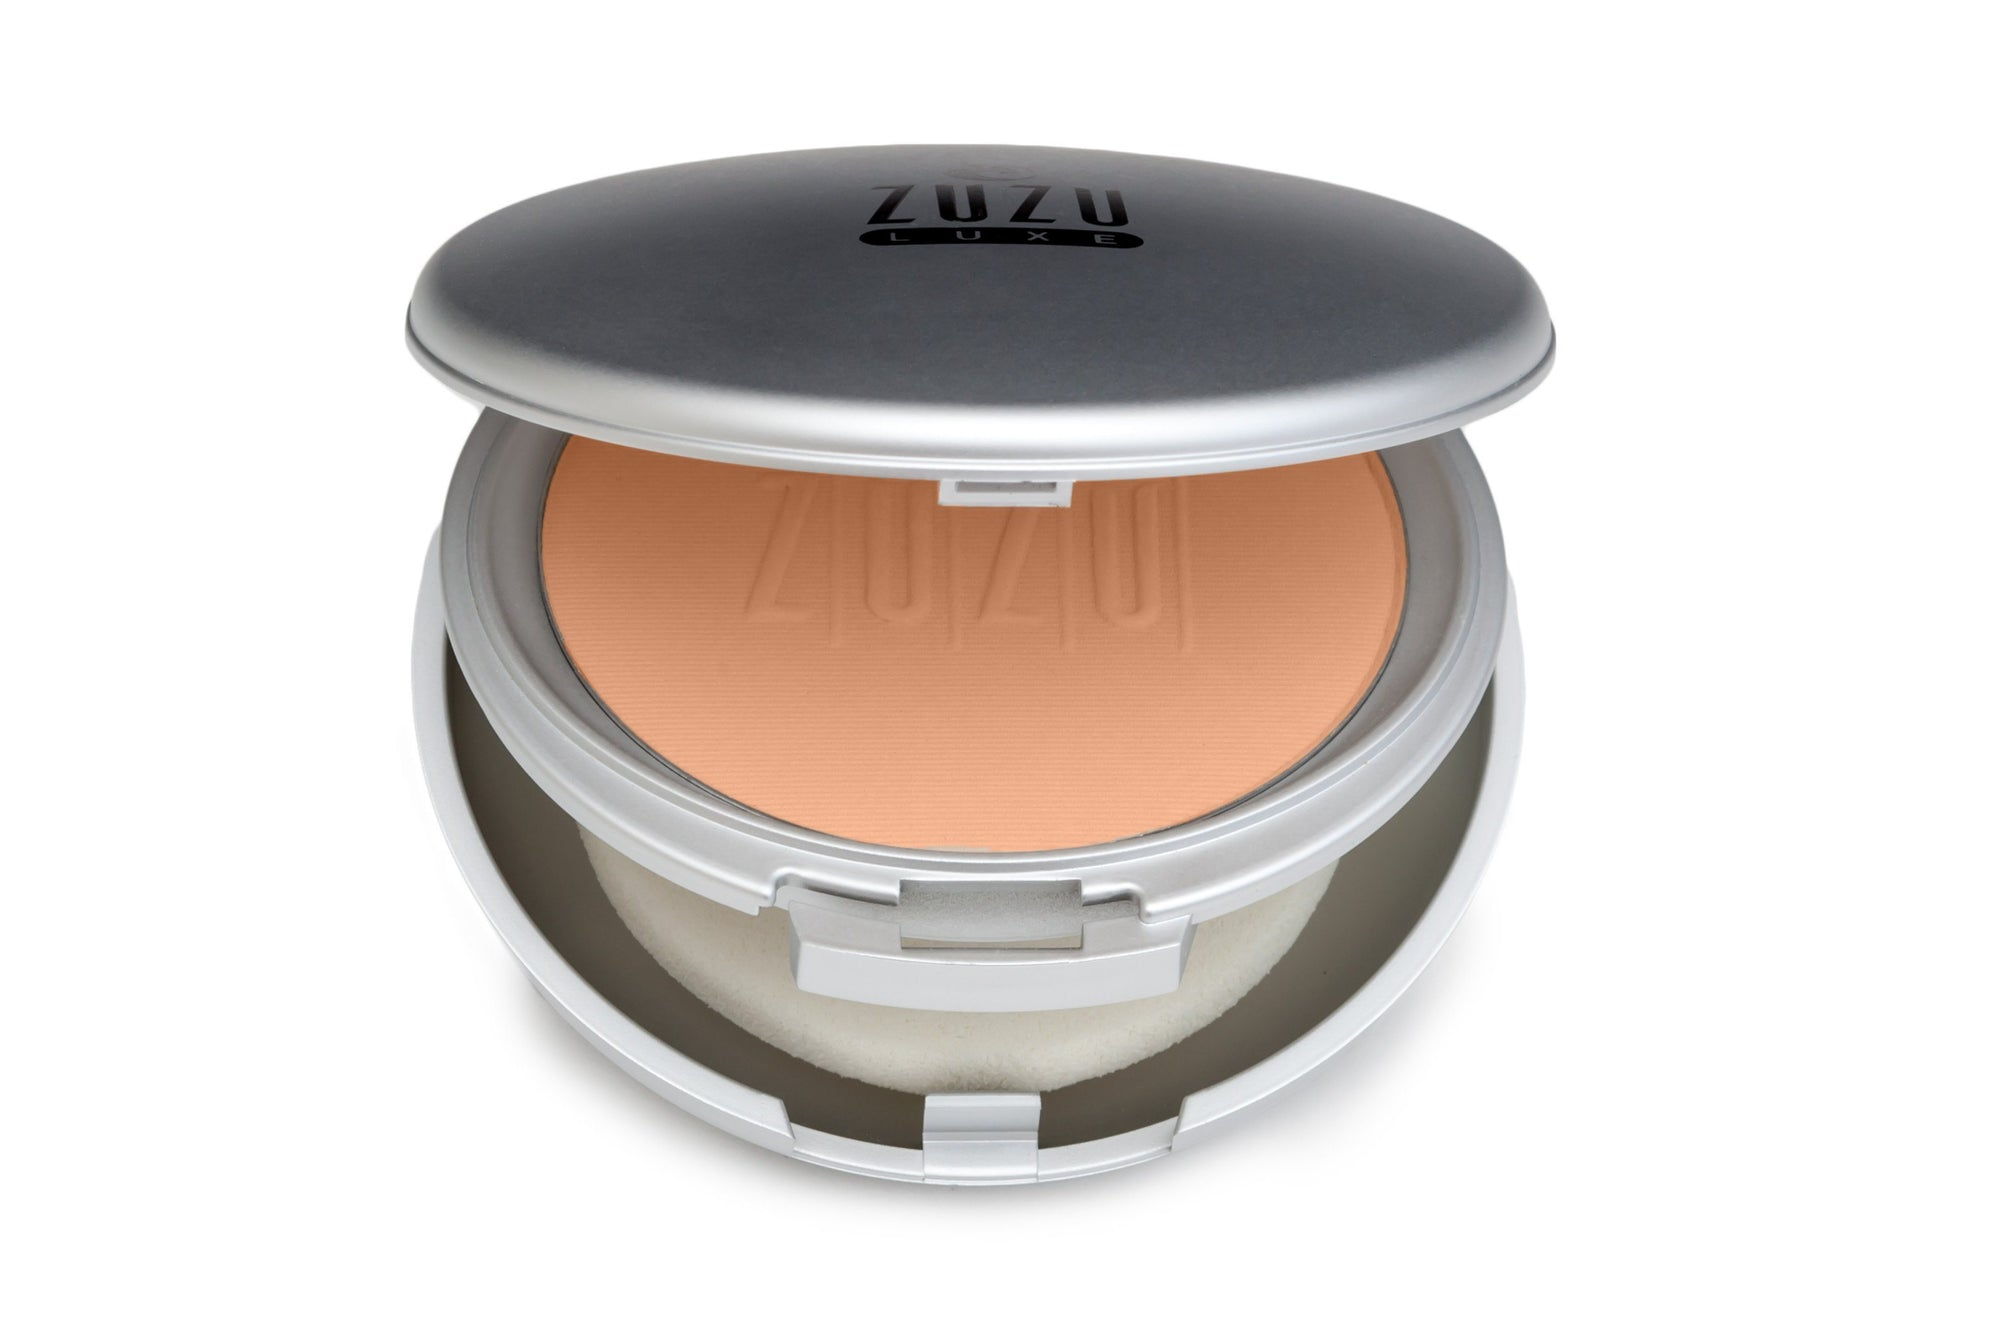 Beauty & Skin Care - Zuzu Luxe - Dual Powder Foundation, D-20